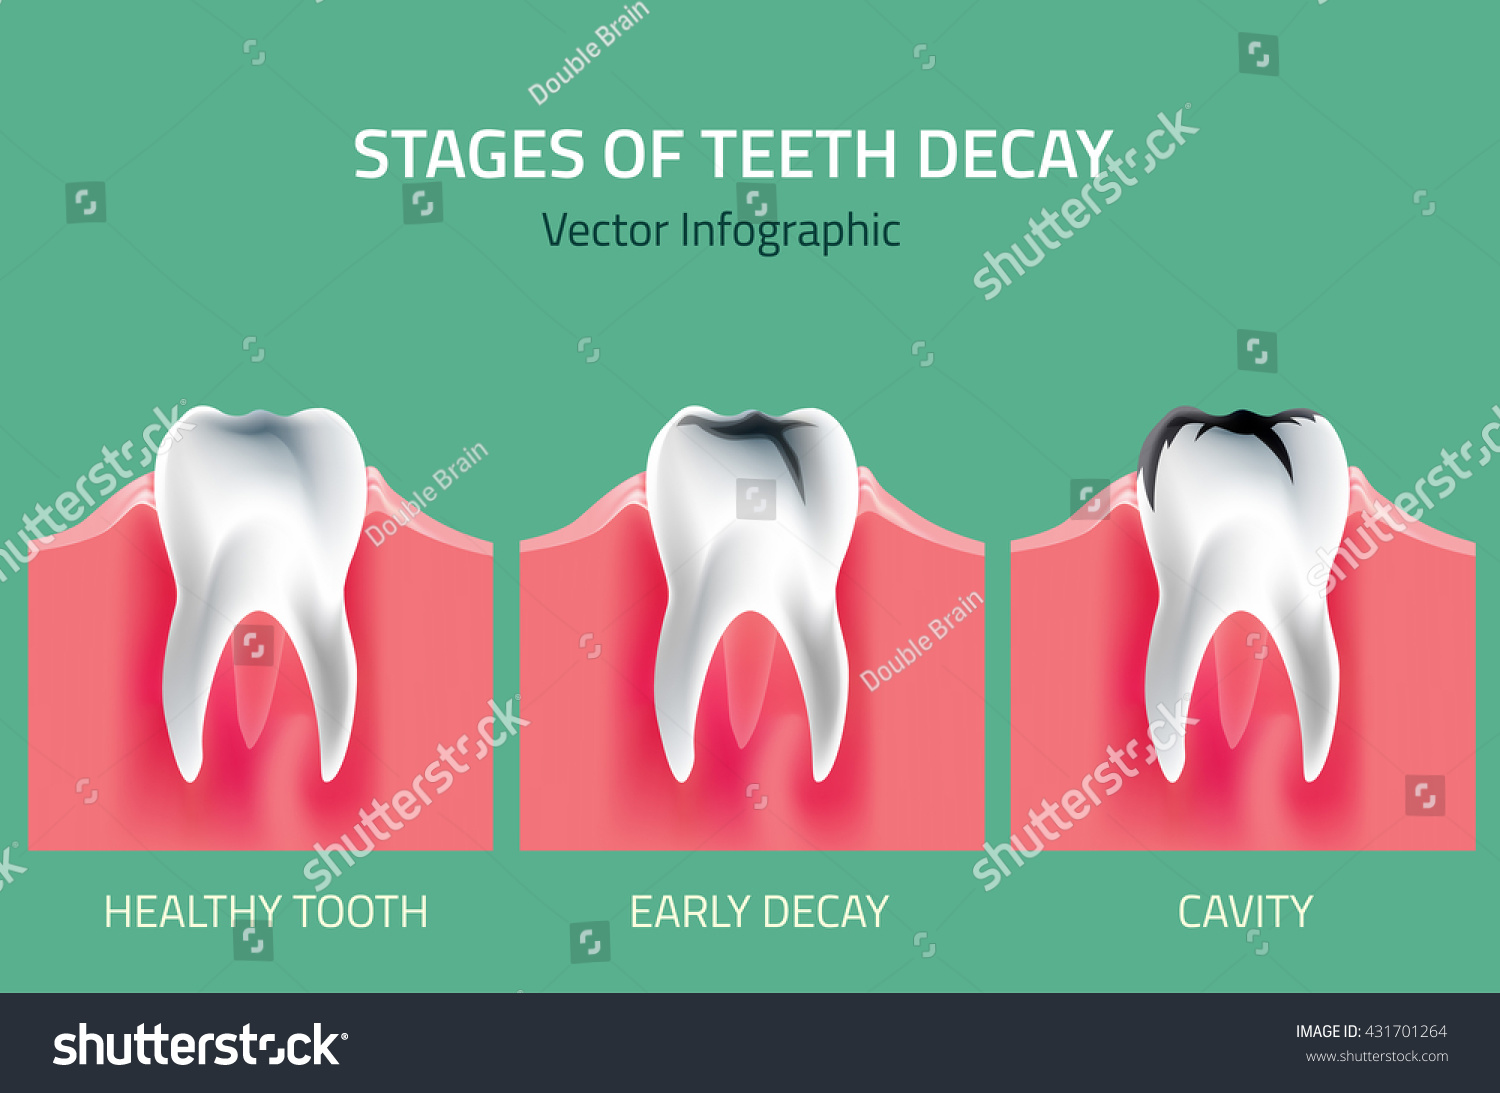 Teeth Disease Infographic Gum Disease Stages Stock Vector 431701264